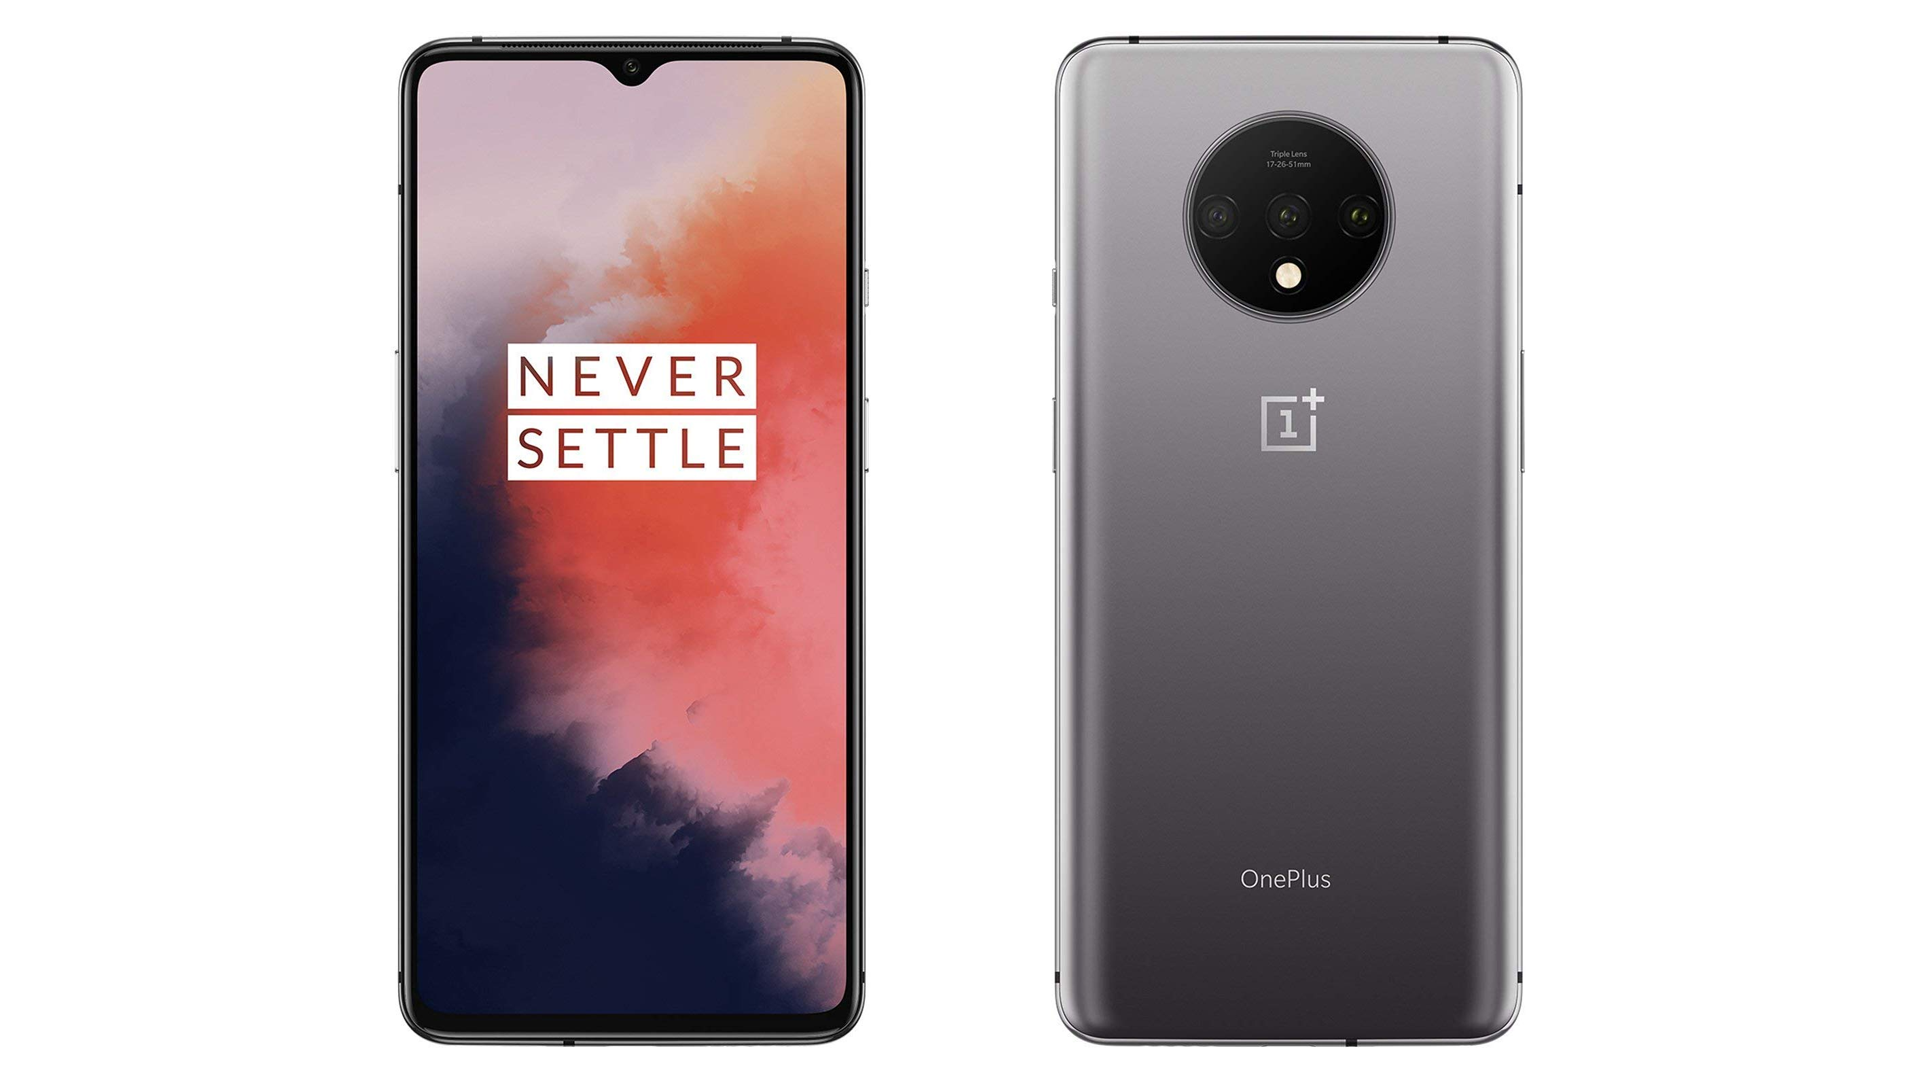 A photo of the OnePlus 7T